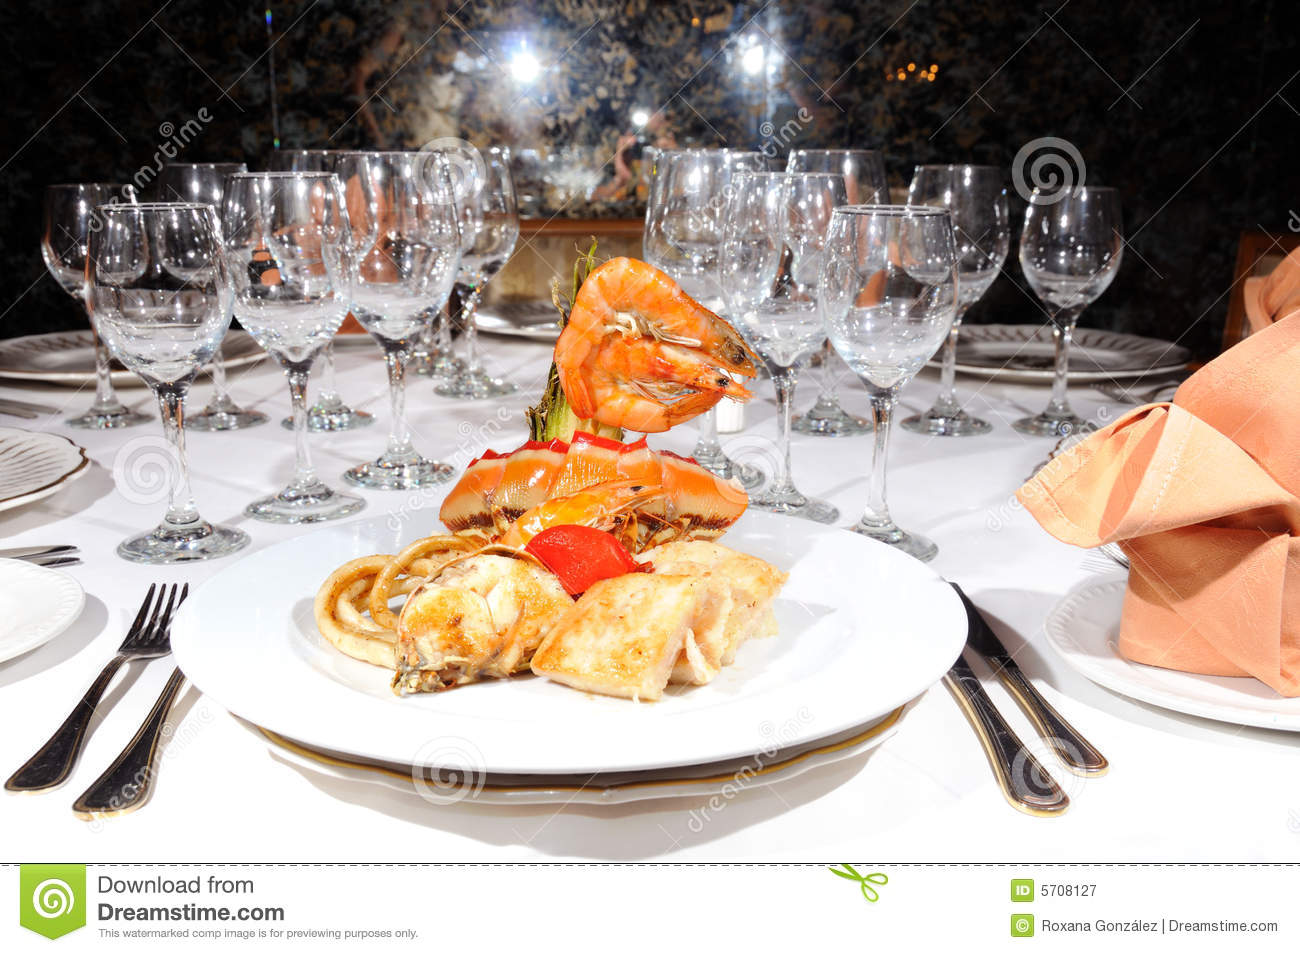 fruits de mer sur le restaurant de luxe image stock image 5708127. Black Bedroom Furniture Sets. Home Design Ideas